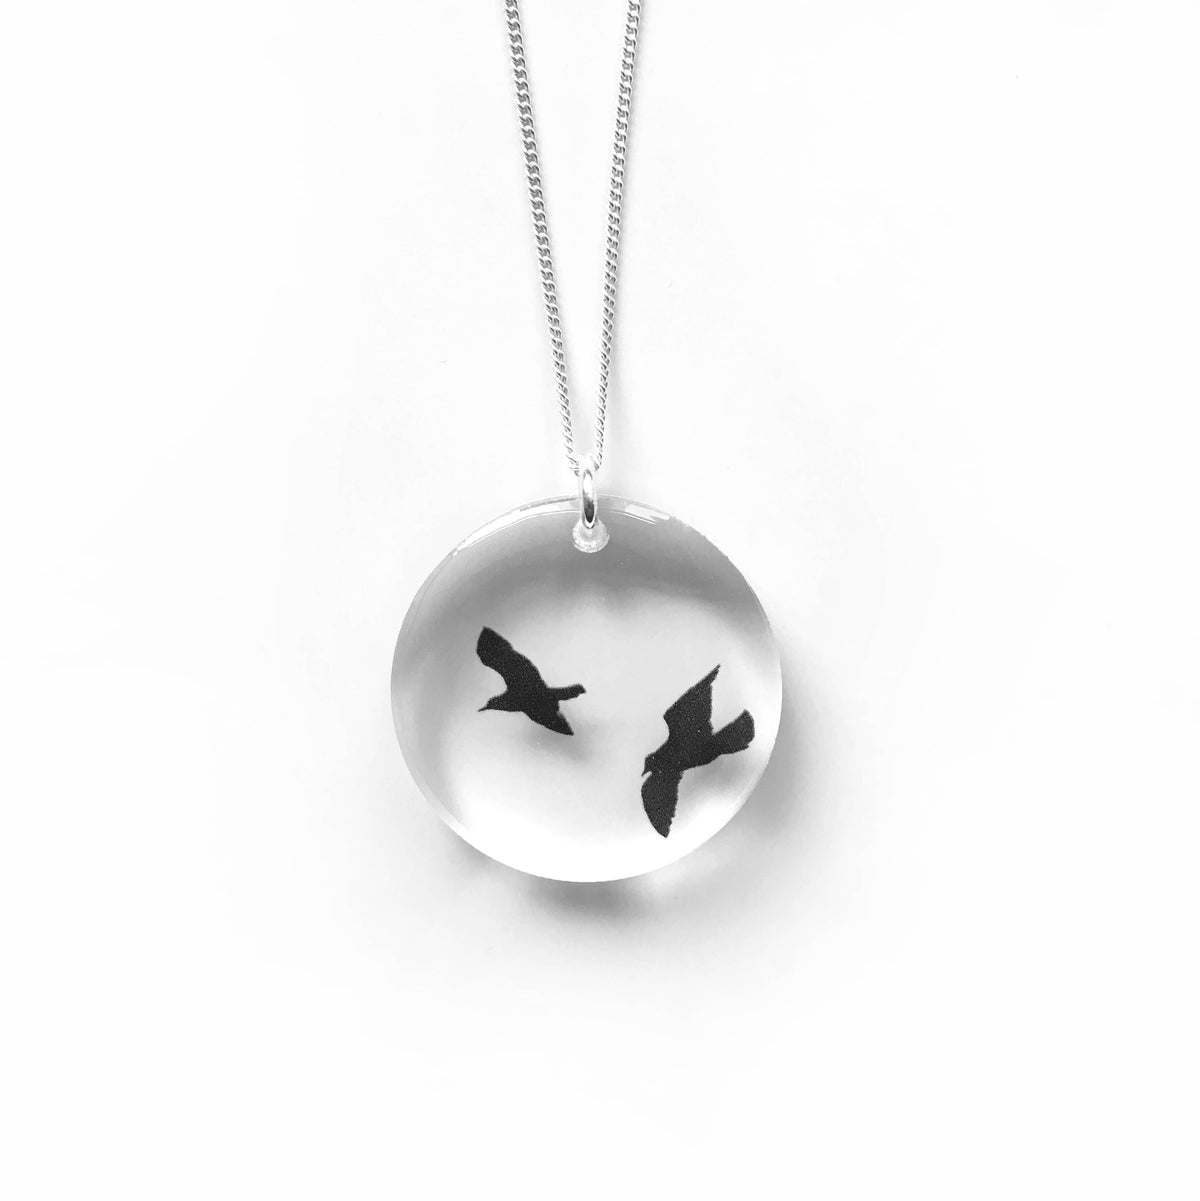 Black Drop Designs - Round Birds Necklace